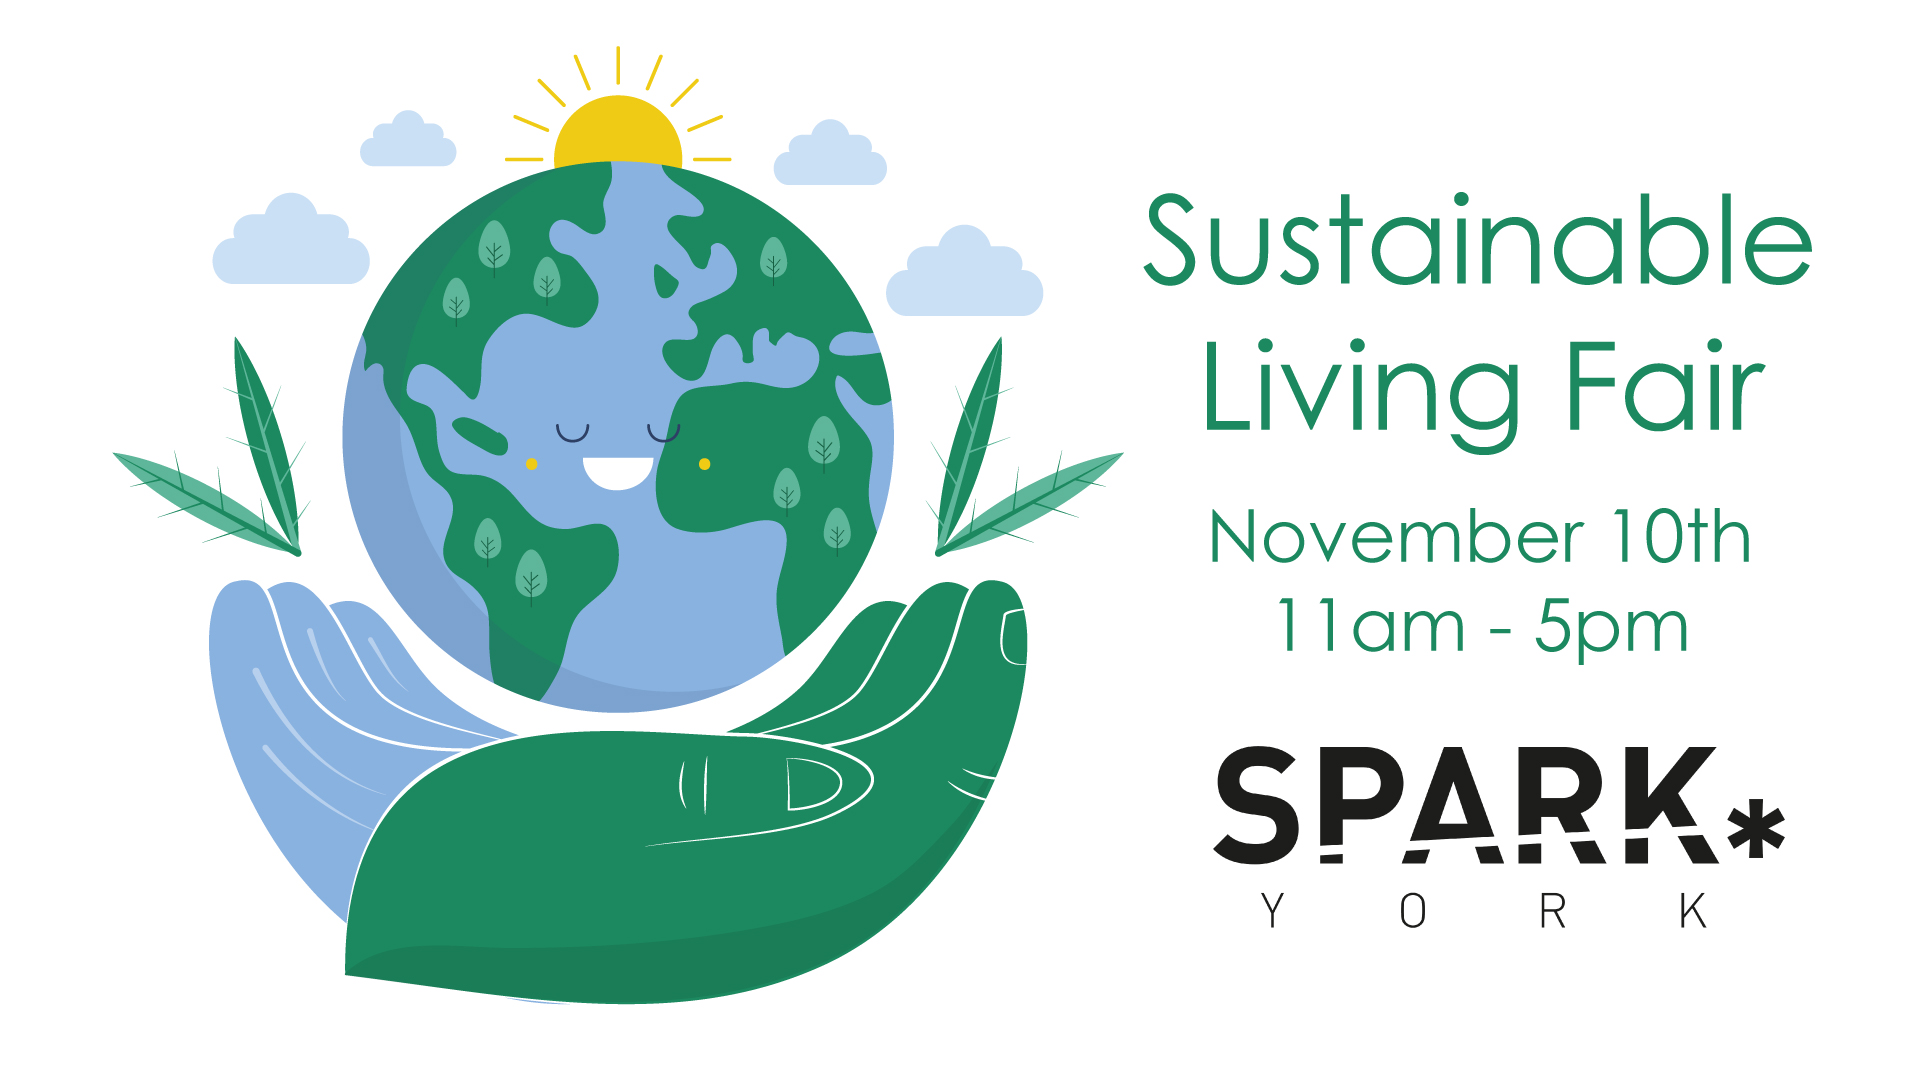 Sustainable Living Fair poster